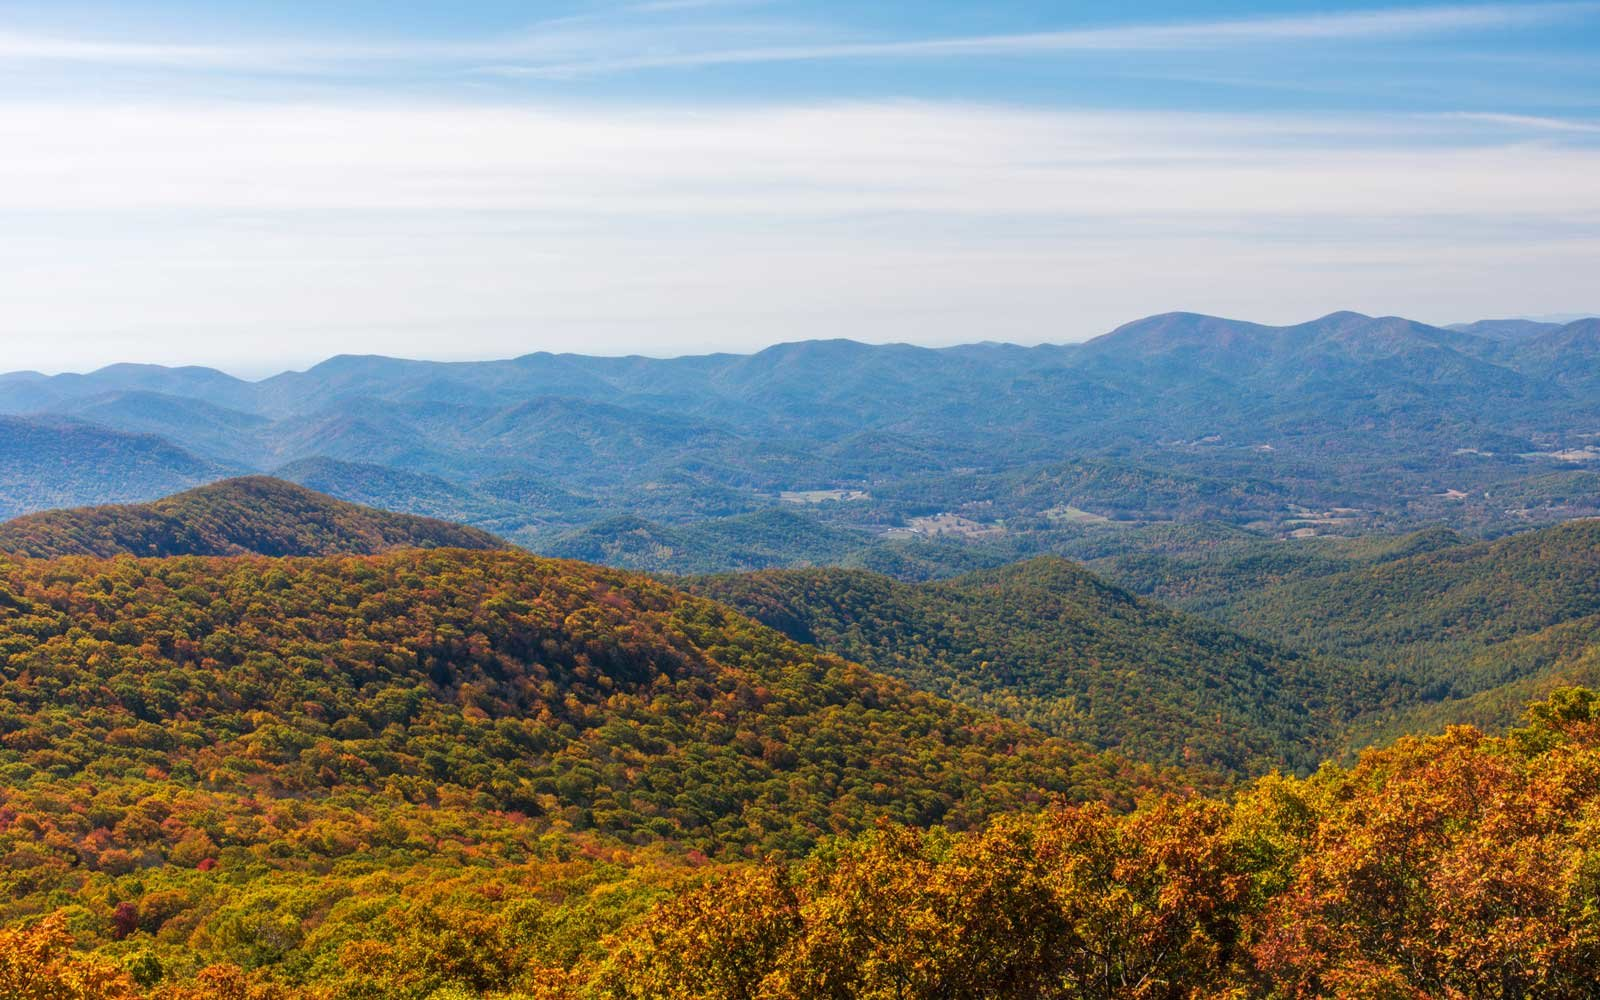 Autumn Landscape of the Blue Ridge Mountain Range